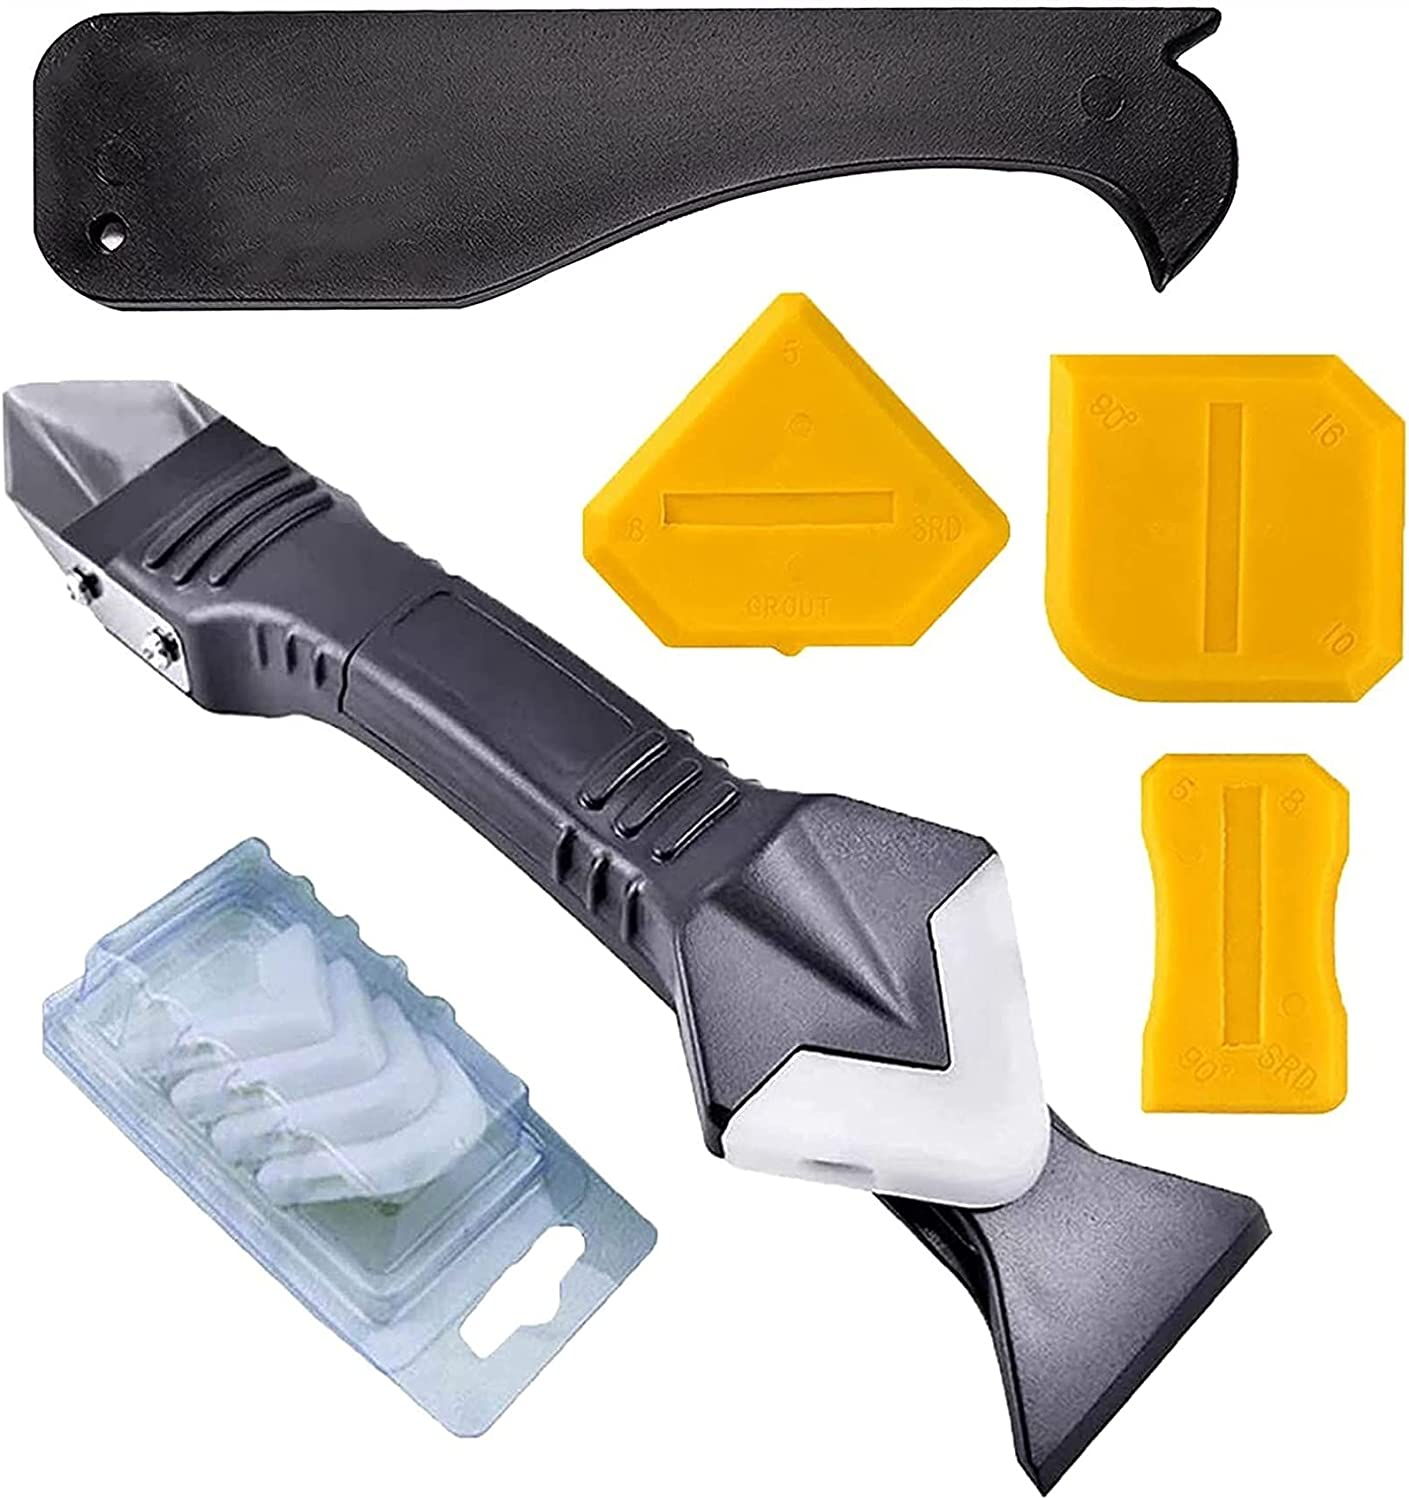 3 In 1 Caulking Tools With Grout Stainless Steel 5 Max Year-end annual account 58% OFF Scraper Head